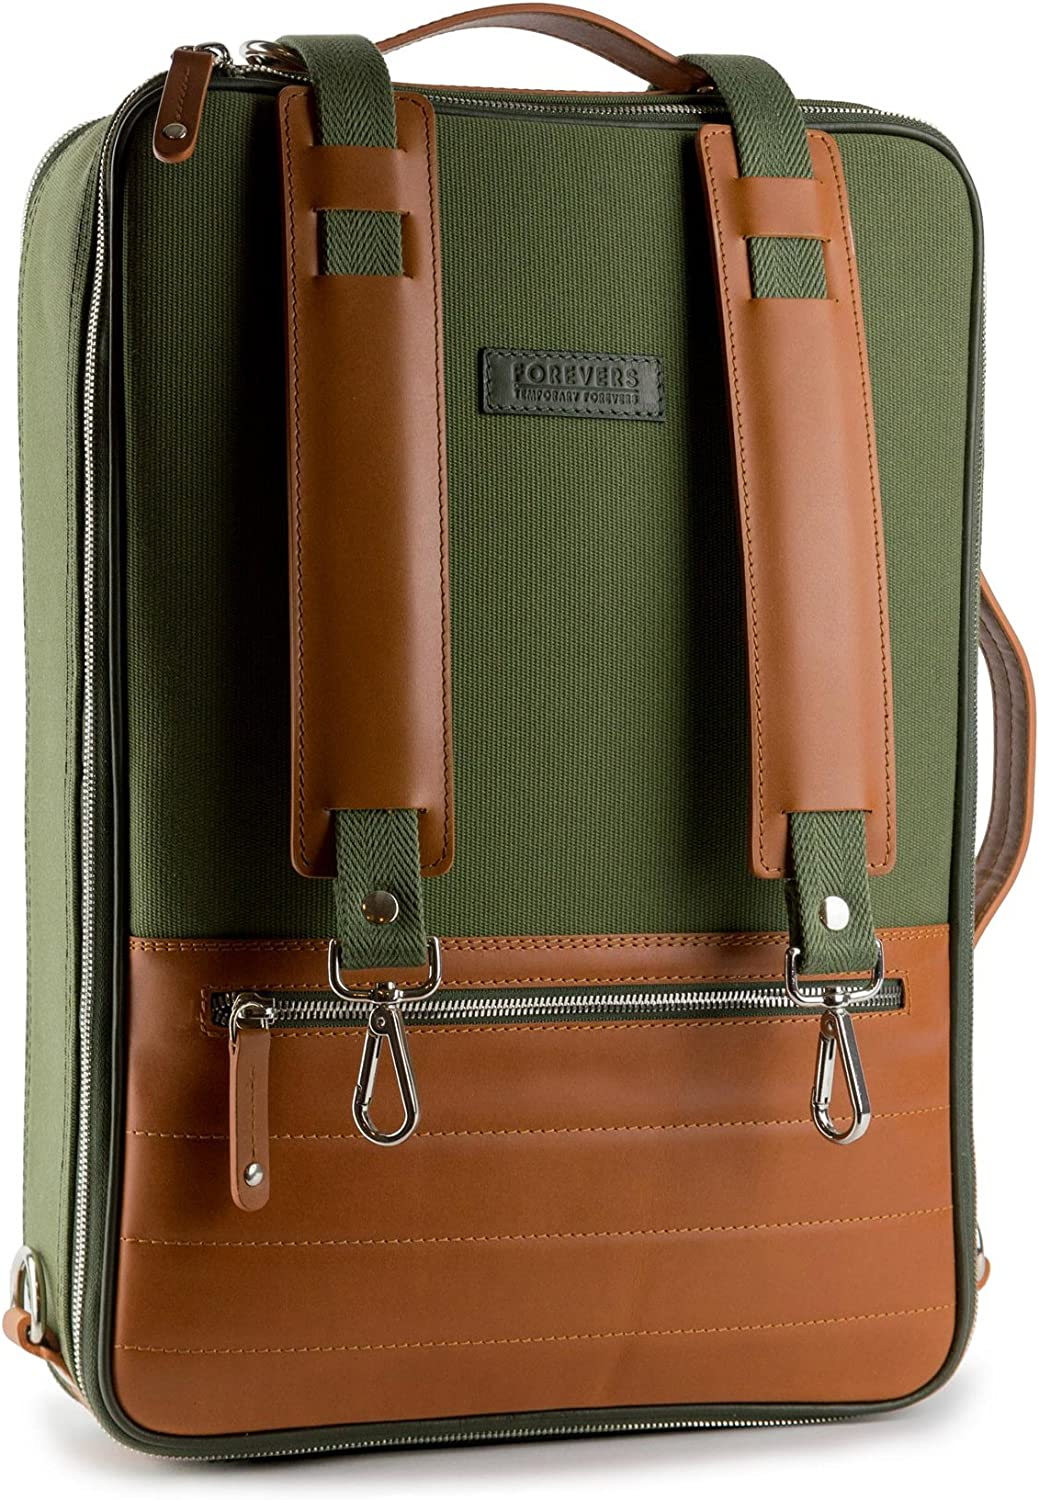 48Hr Switch Leather & Canvas Bag - 3in1 Expandable Briefcase